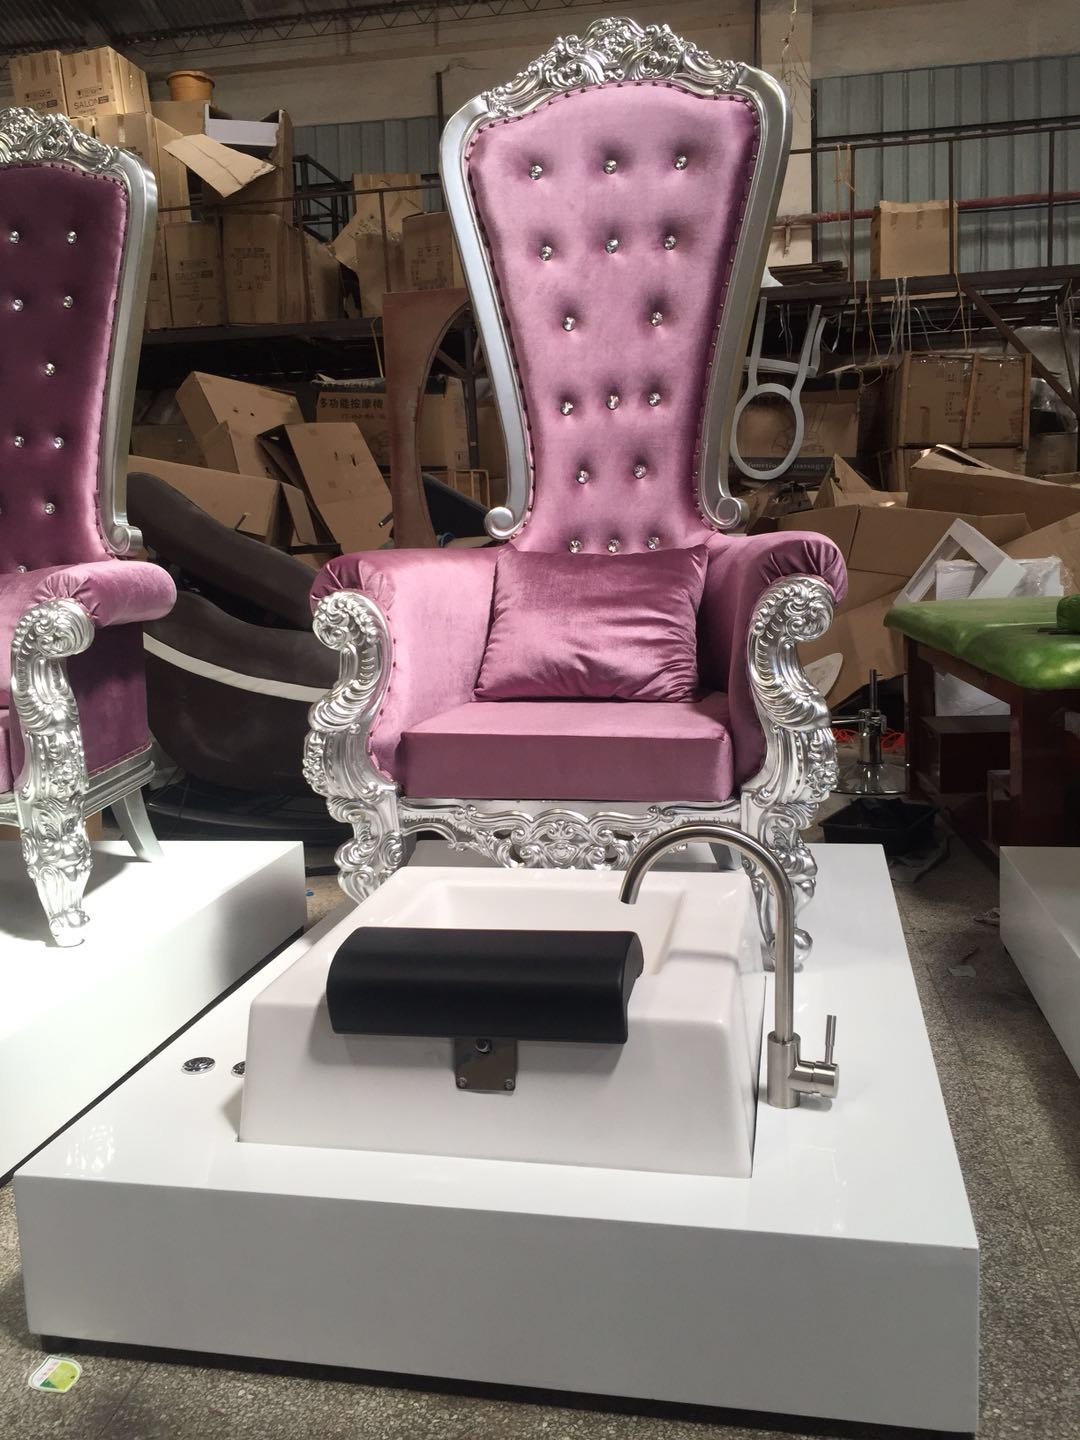 wholesale king throne pedicure chair high quality cheap king throne chair pedicure chair manufacturer DS-Queen D